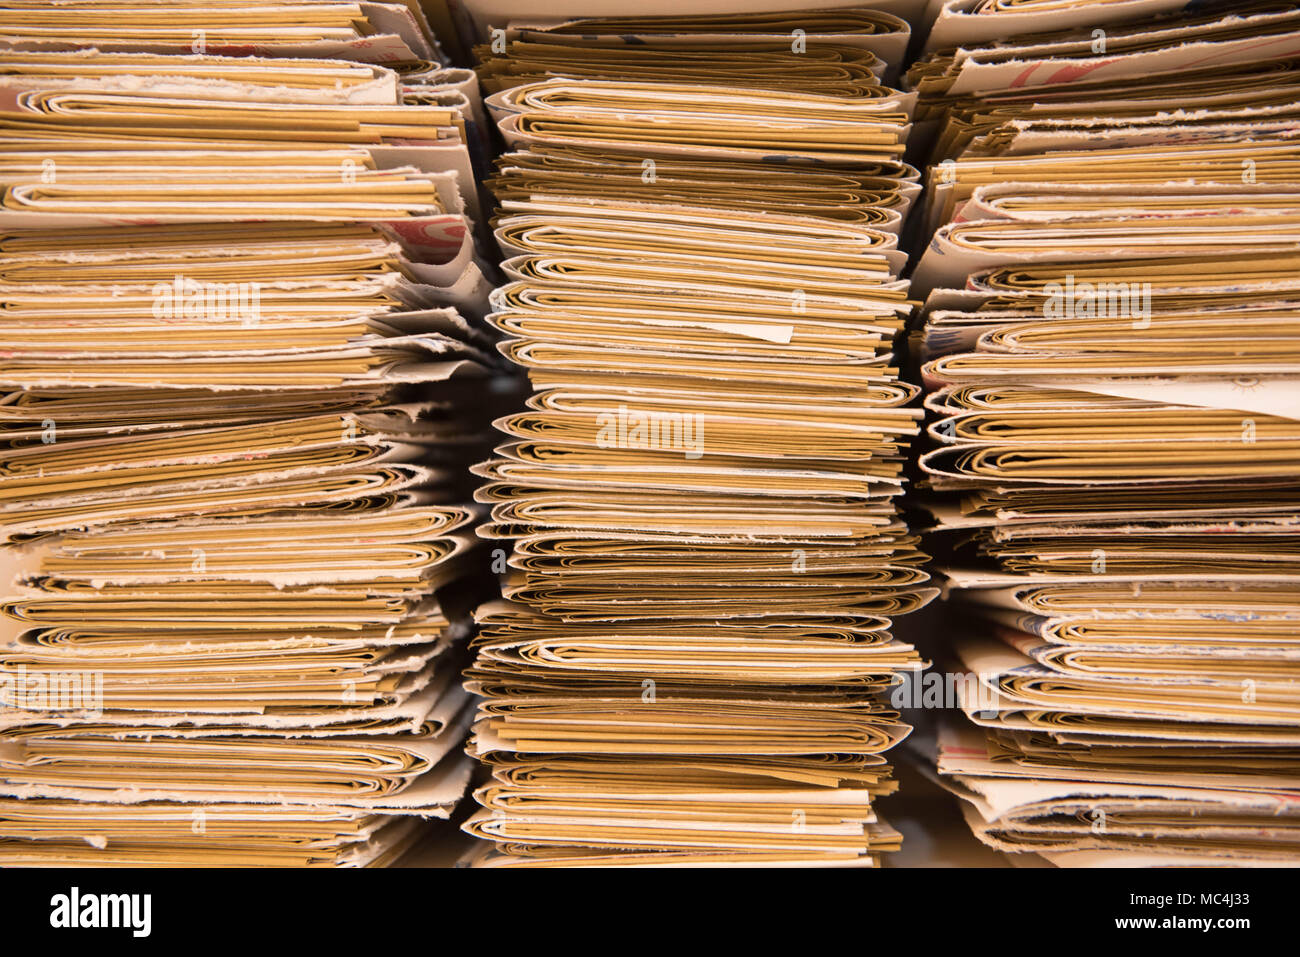 Carmela Dacchille handles an interesting project called Edizioni Precarie, Letter of Food Paper, recycles in various ways what's the paper used to wra - Stock Image